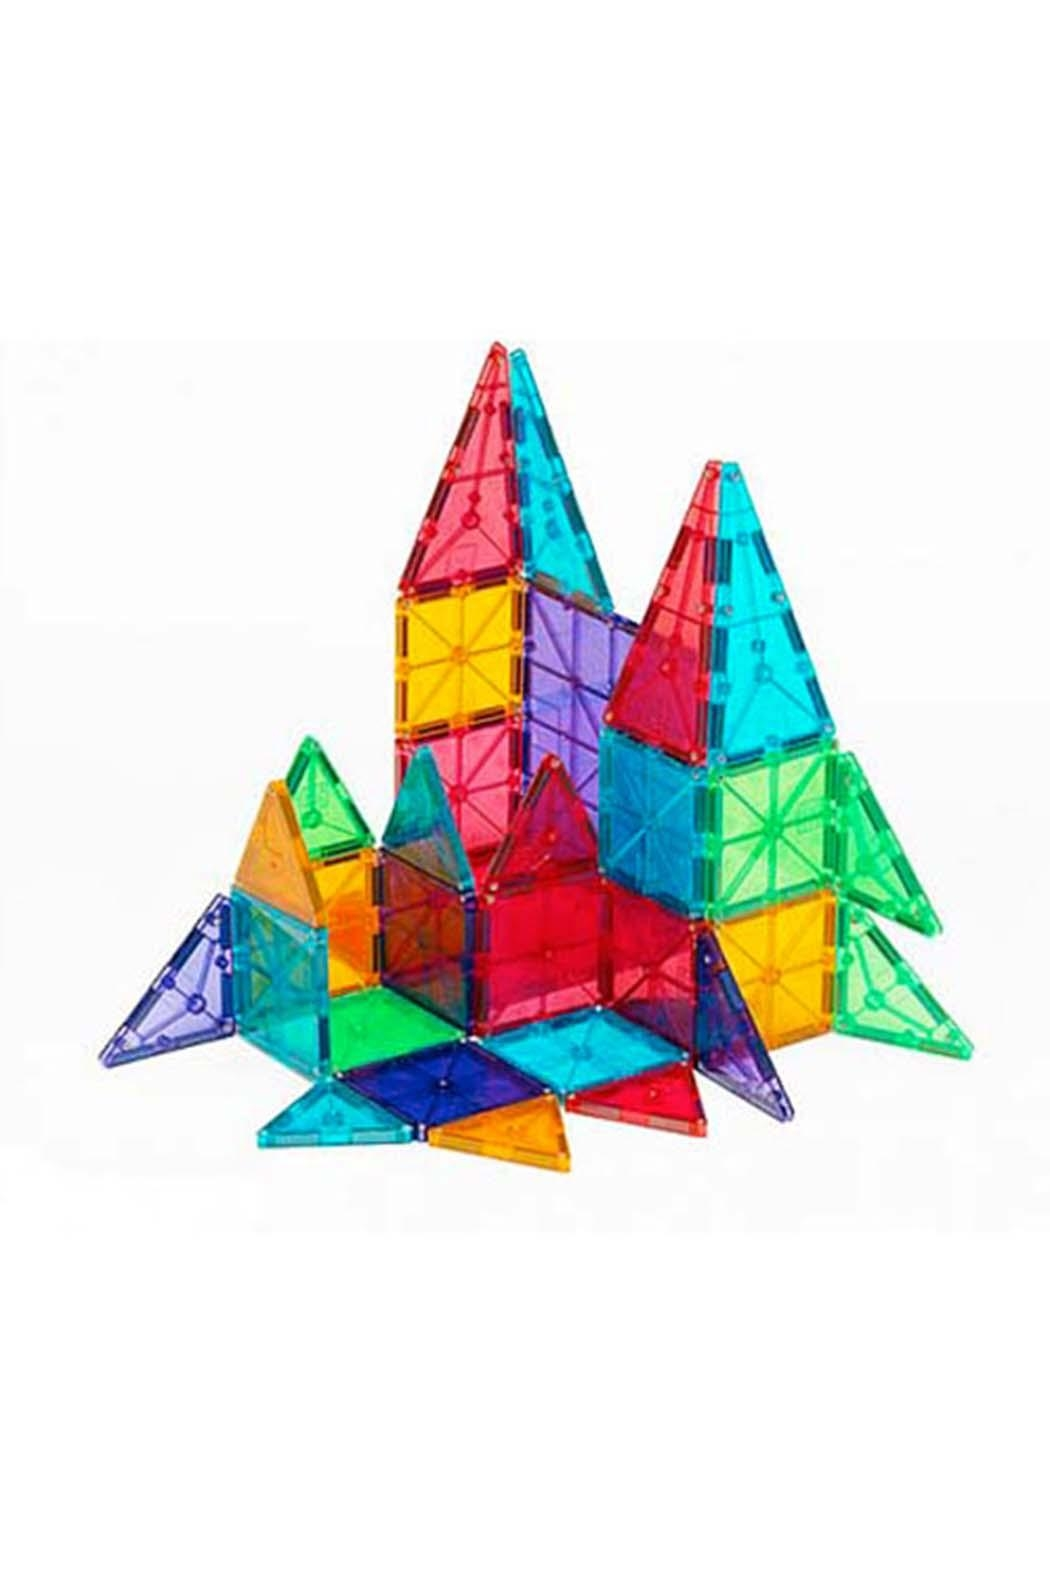 Magna Tiles Promo Codes & Cyber Monday Deals for November, Save with 2 active Magna Tiles promo codes, coupons, and free shipping deals. 🔥 Today's Top Deal: Just $ For Magna-Tiles® Glow 32 Piece Set. On average, shoppers save $36 using Magna Tiles coupons from cbsereview.ml